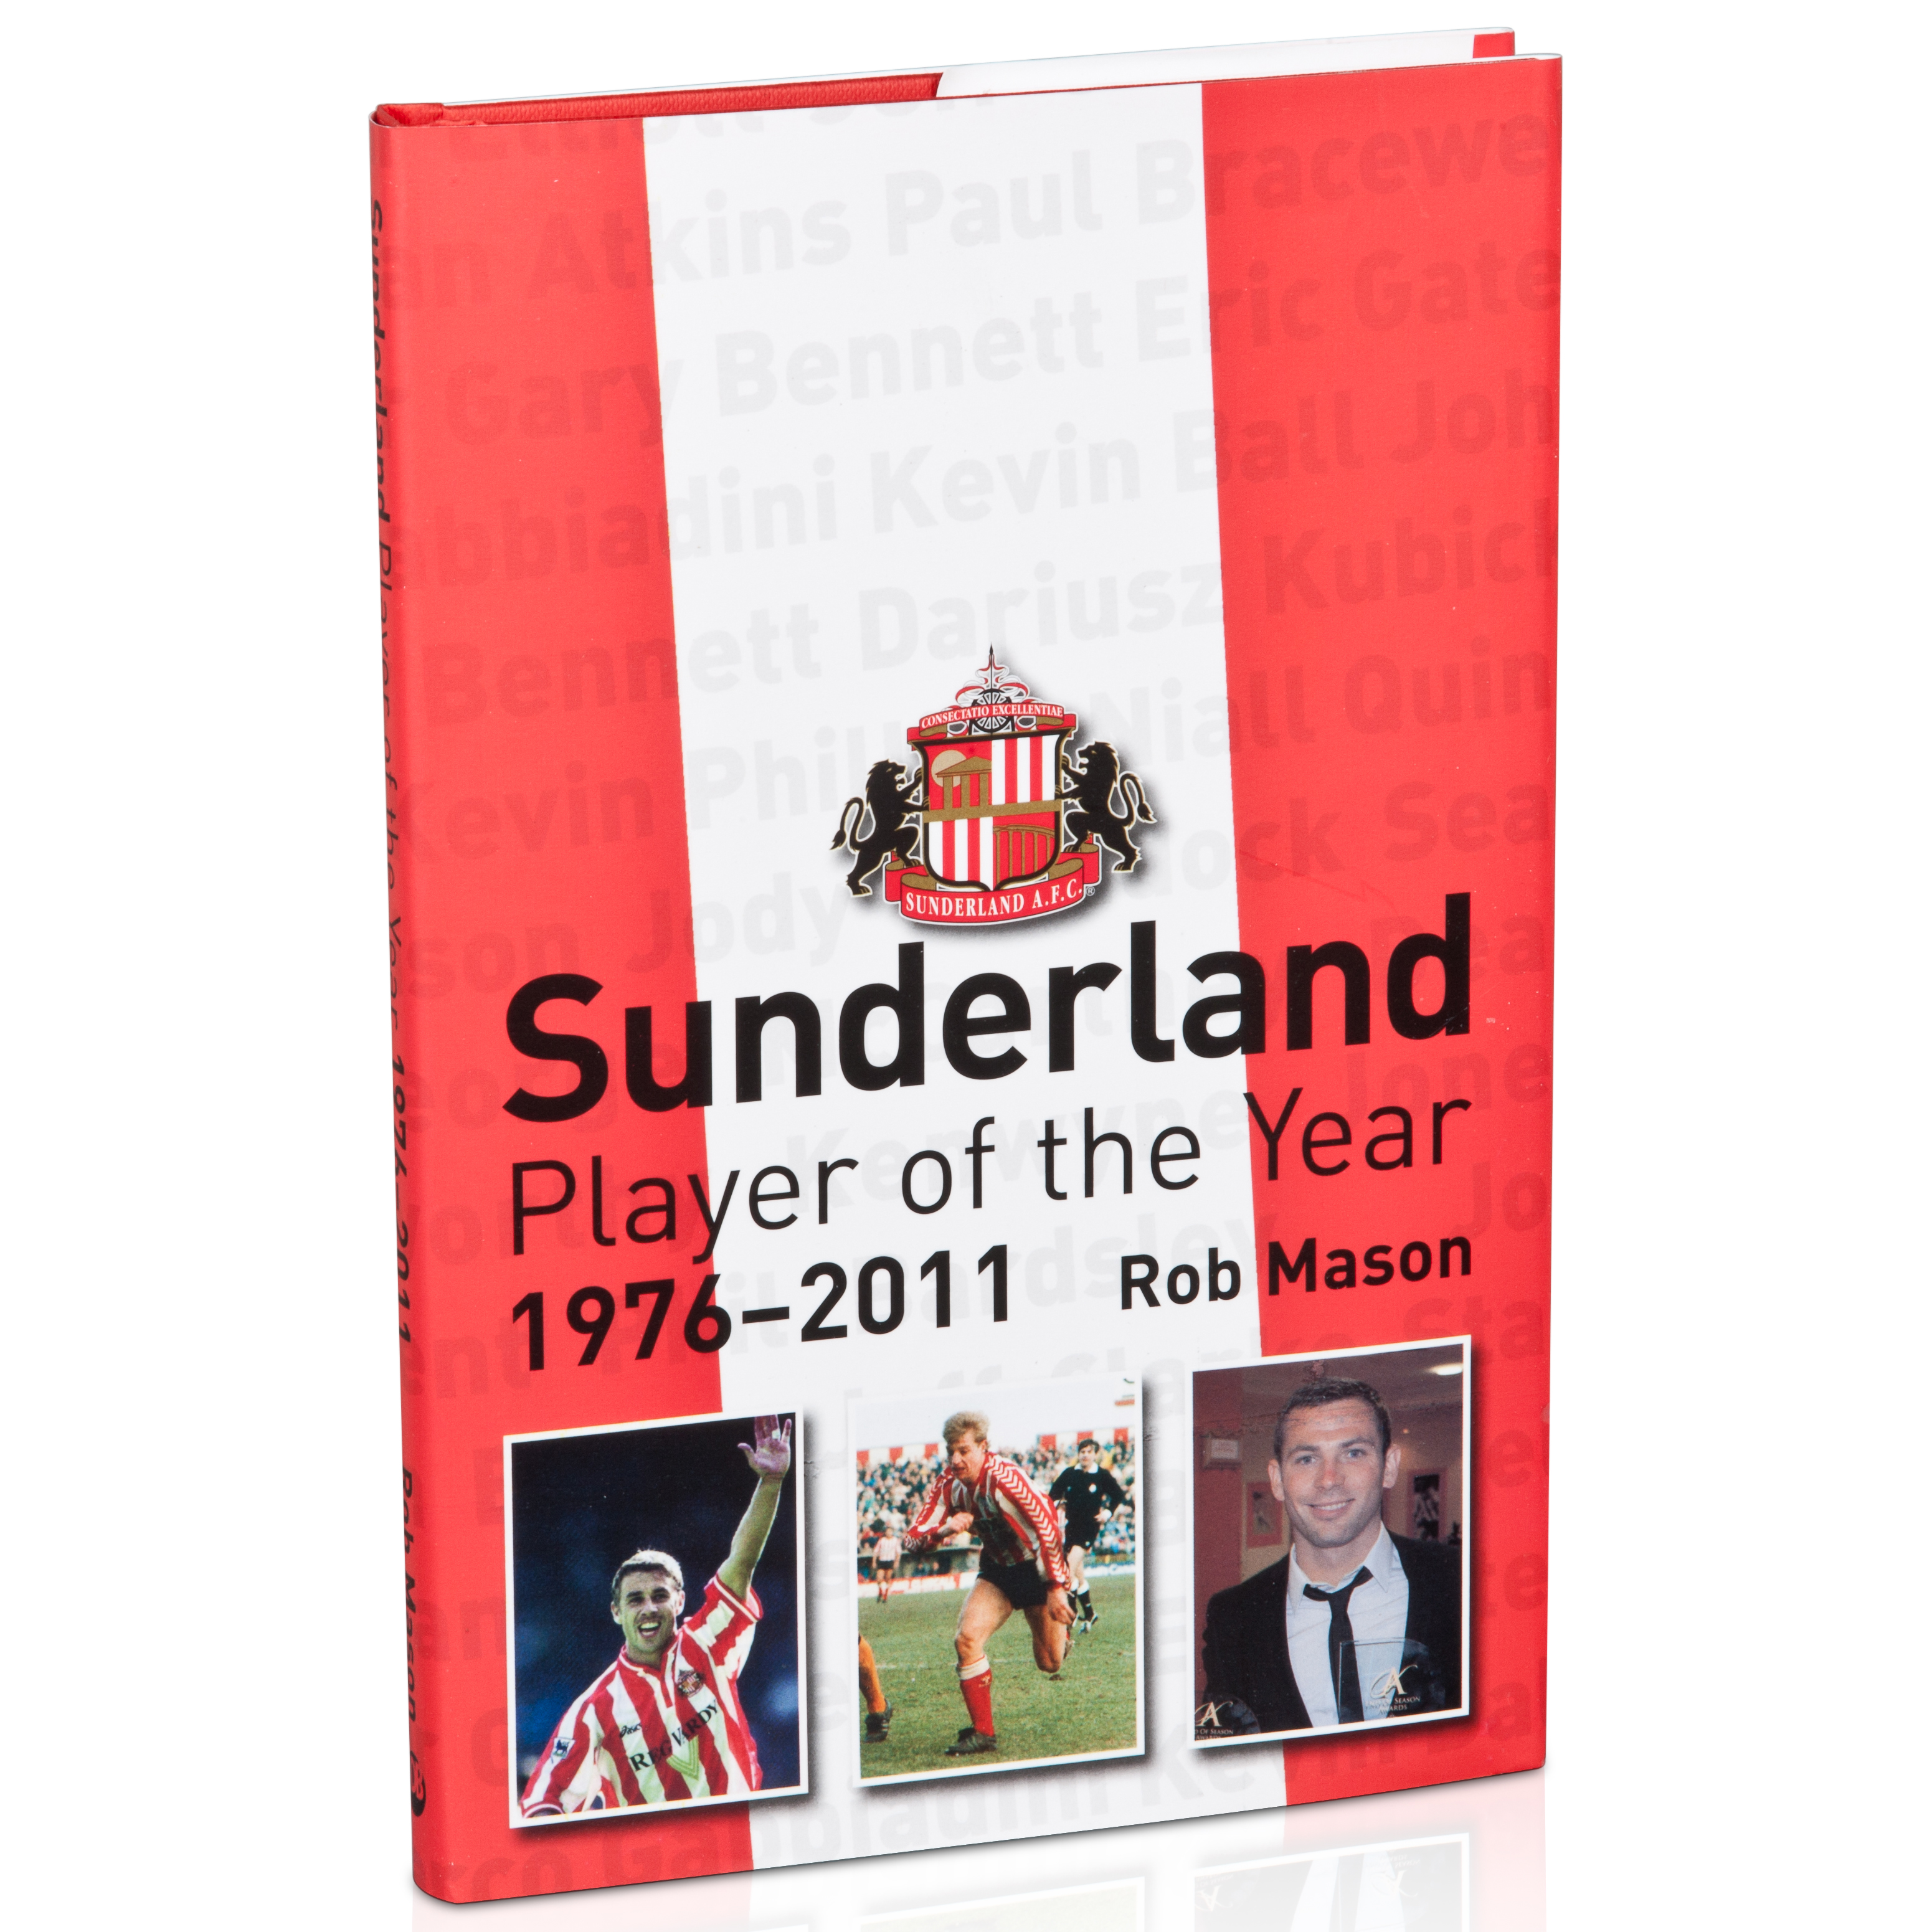 Sunderland Player of the Year 1976-2011 Book